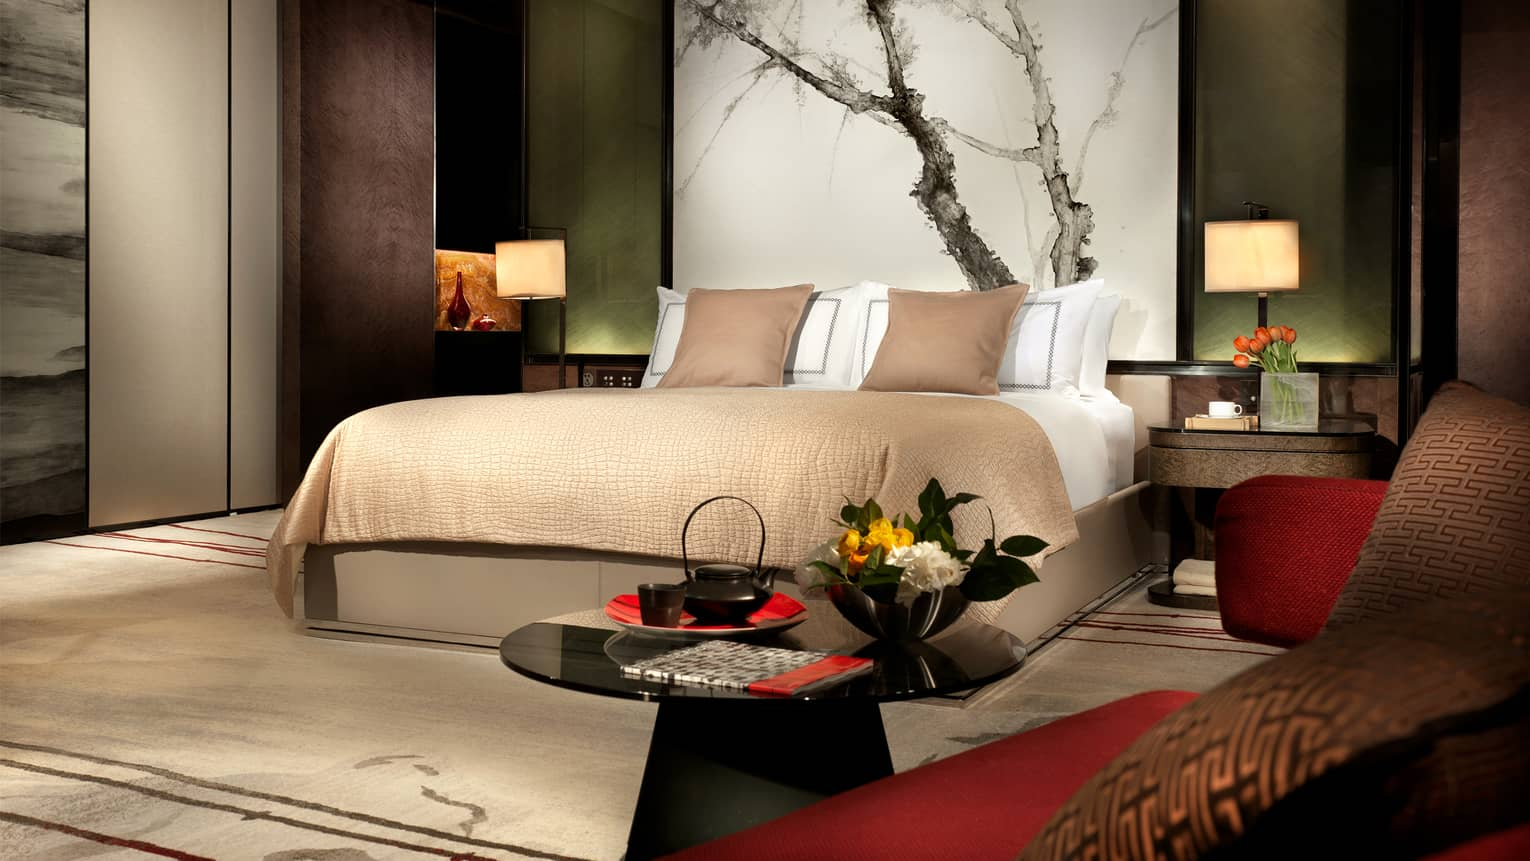 Hotel room platform bed with headboard painting of tree branches, deep brown, red and green decor